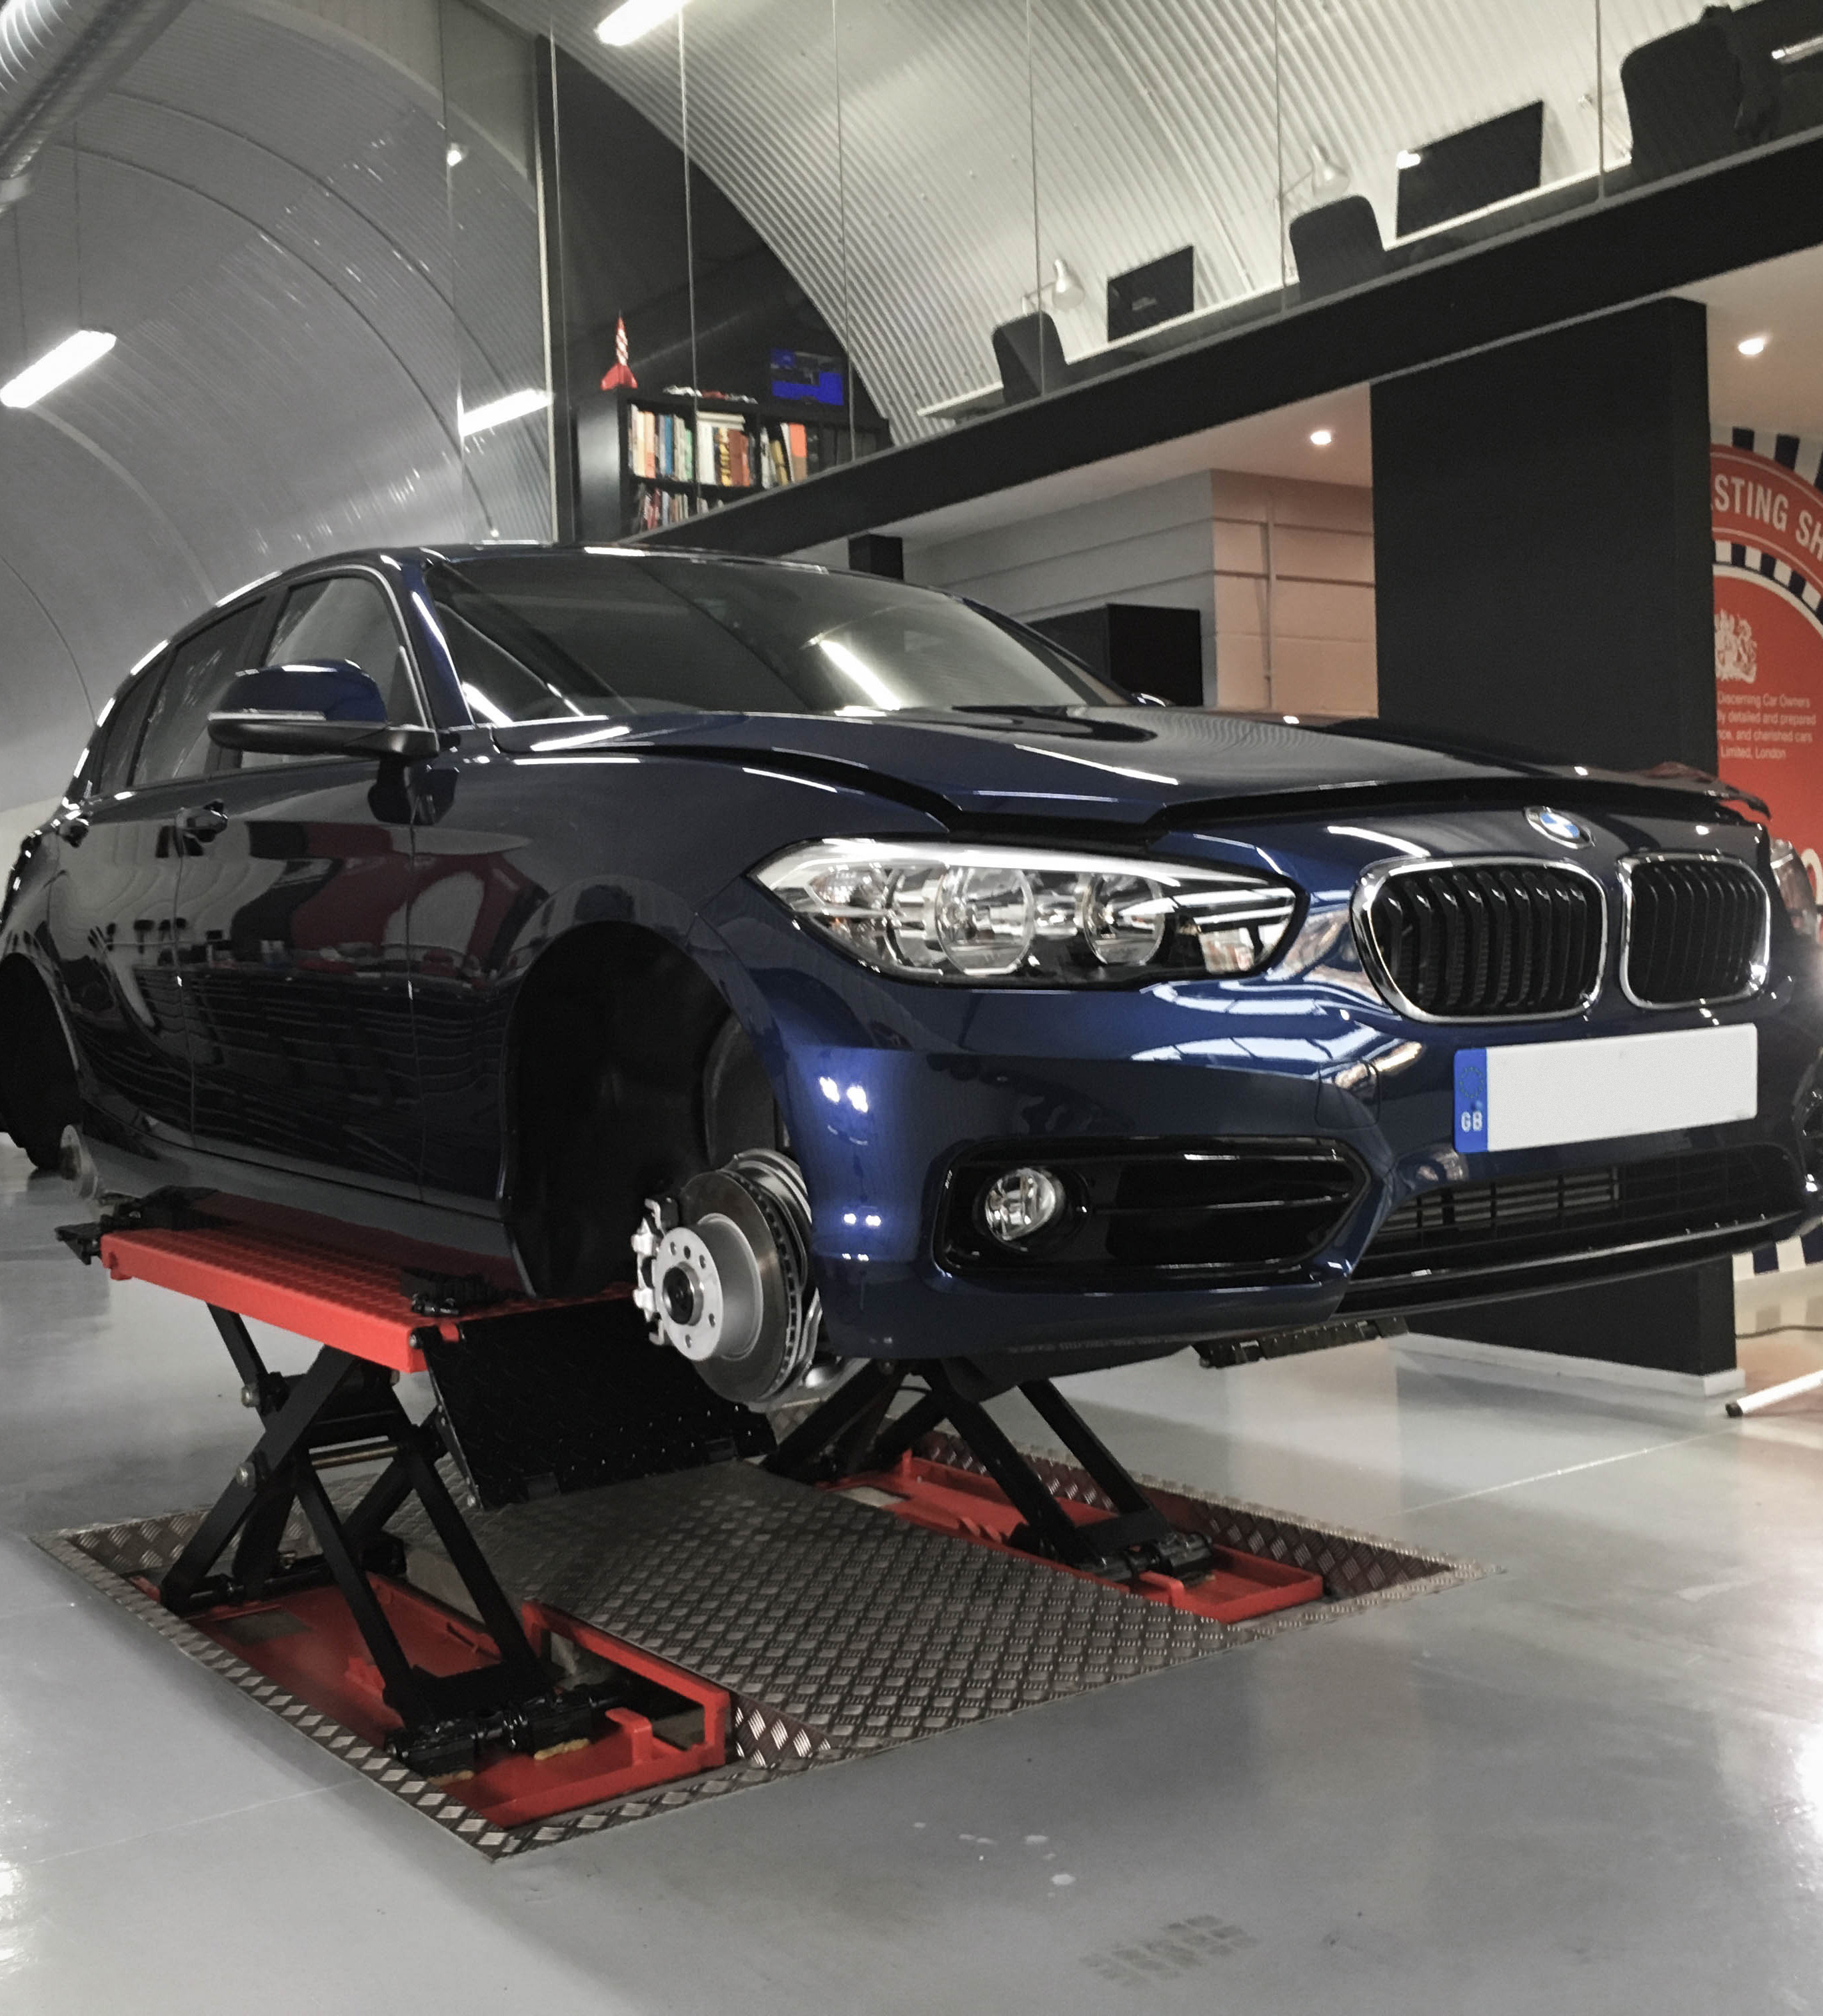 BMW 1series – Lifted